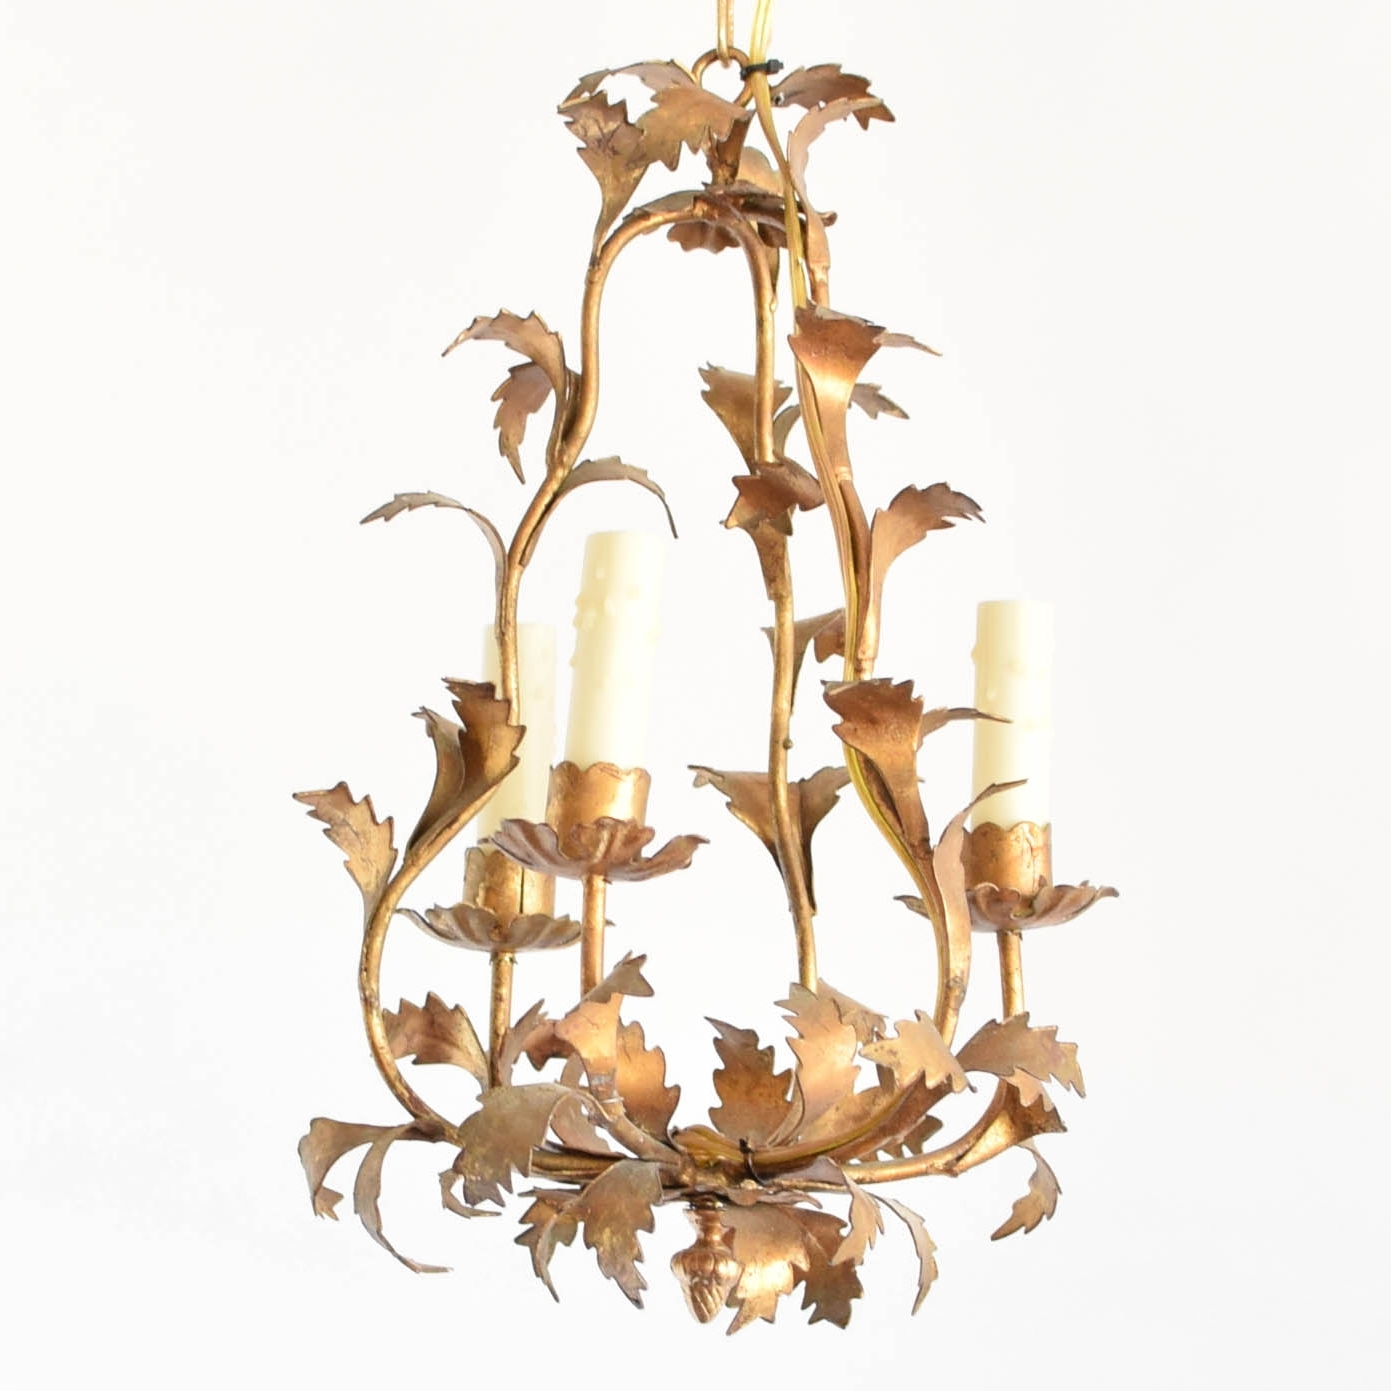 Vintage Italian Chandeliers In Widely Used Italian Gold Leaf Chandelier – The Big Chandelier (View 13 of 15)